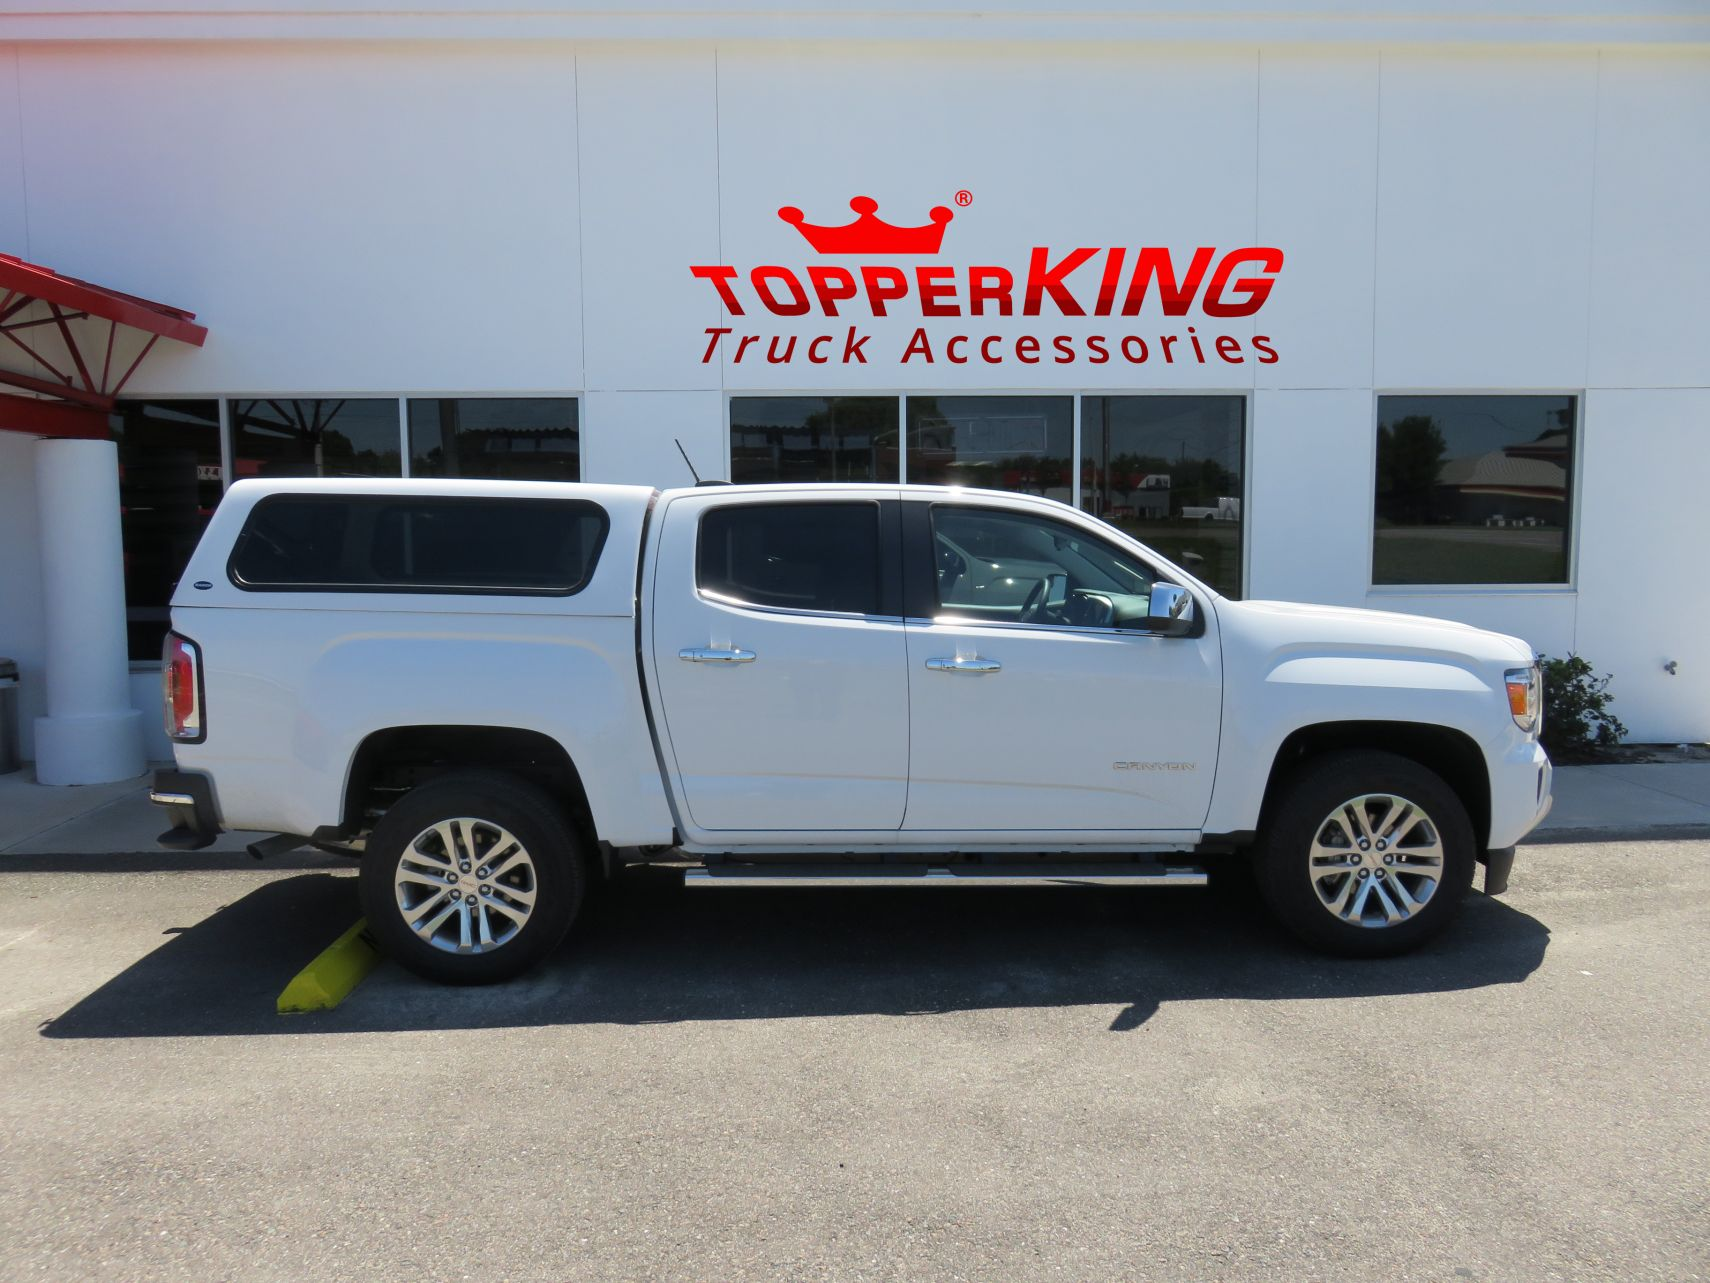 hight resolution of gmc canyon ranch echo fiberglass topper from topperking by topperking in brandon fl 813